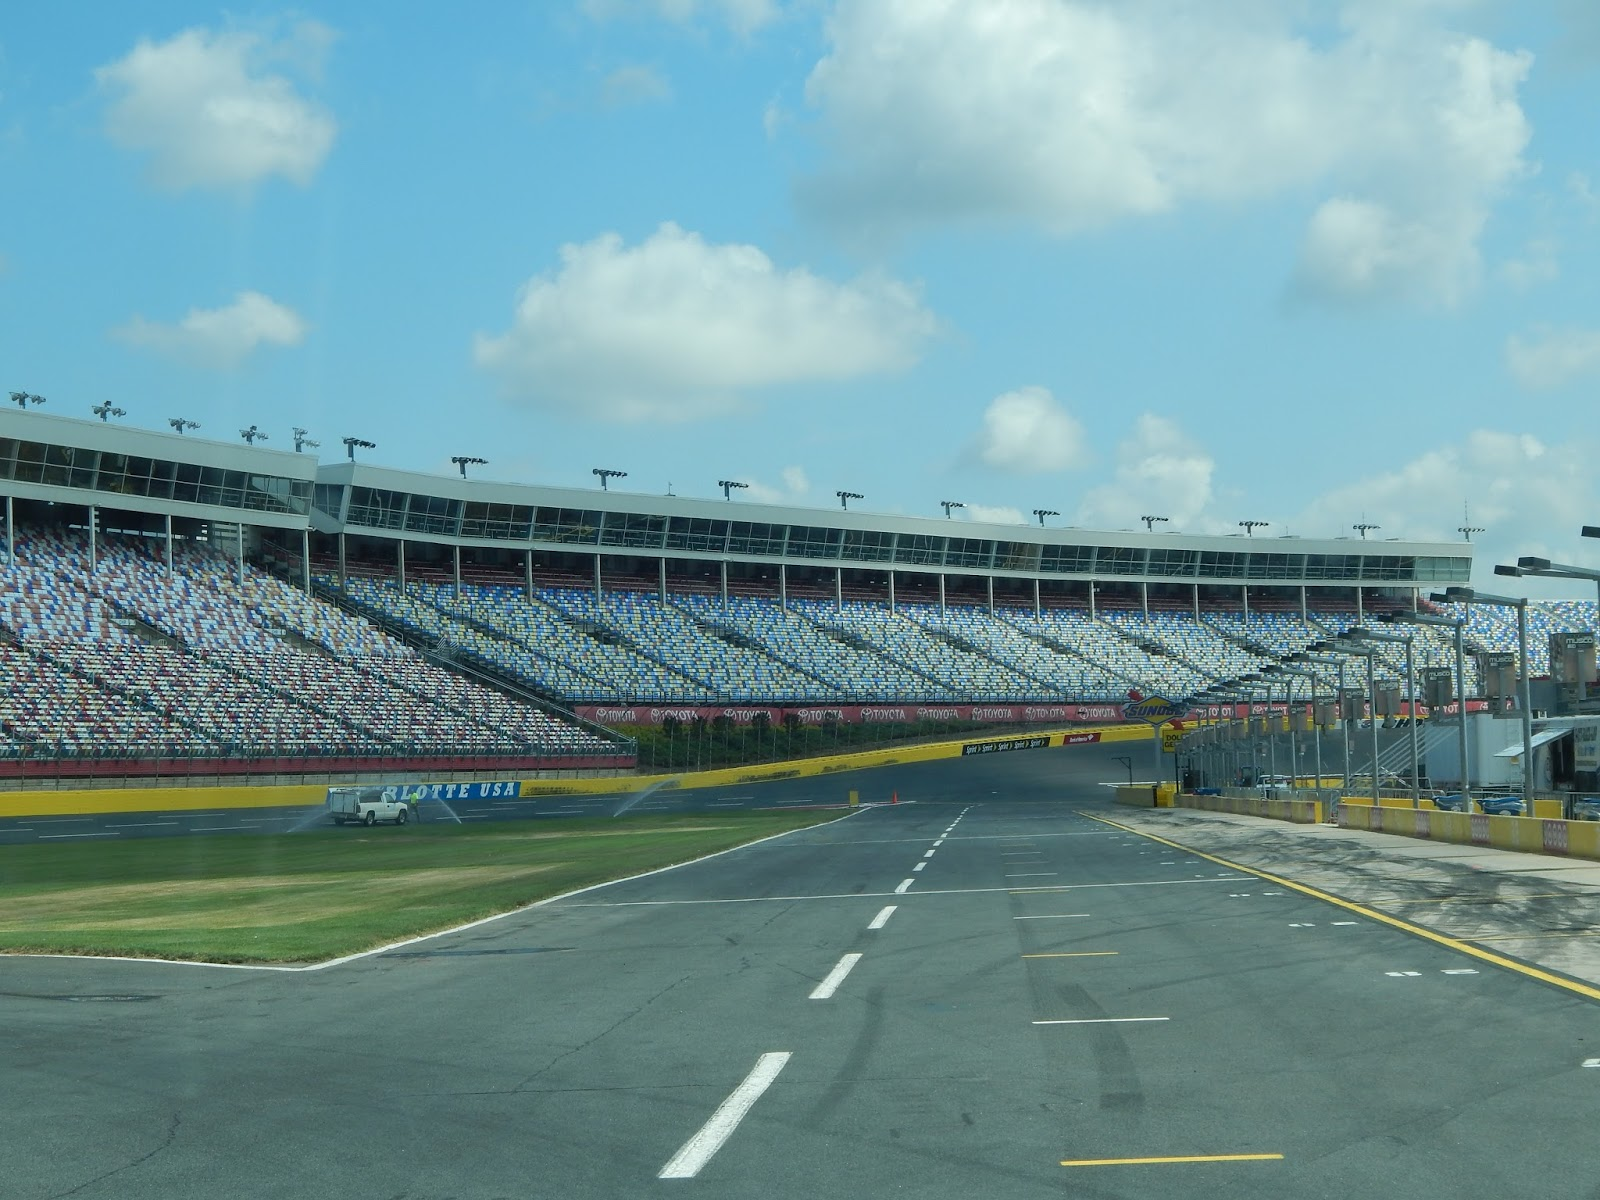 Charlotte motor speedway a view from the track for Charlotte motor speedway museum